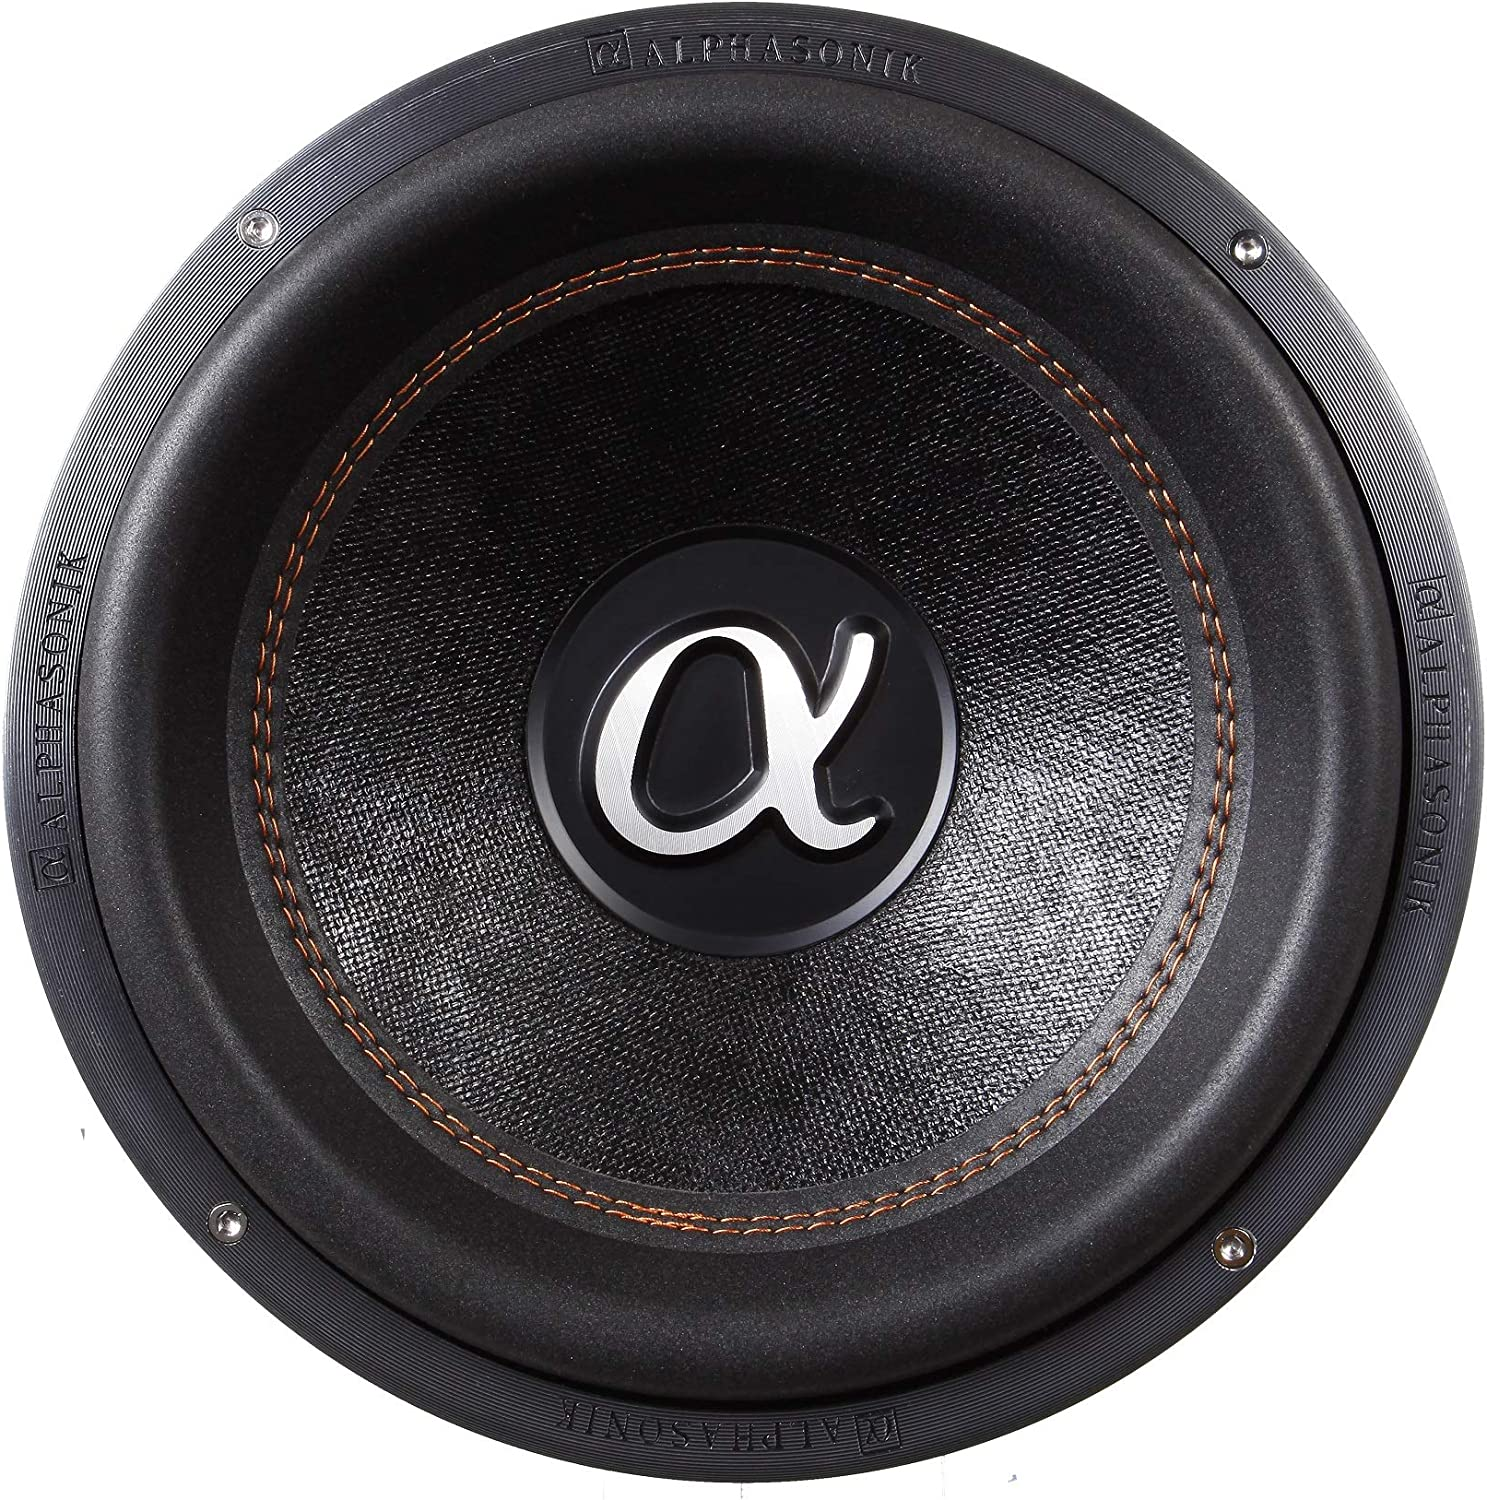 """1100 Watts RMS Dual 4 Ohm Car Subwoofer Die Cast Aluminum Basket w// Double Stacked Magnets Carbon Fiber Cone Cooling Rings System Sub Woofer Alphasonik VSW810 Venum 800 Series 10/"""" 3300 Watts Max"""